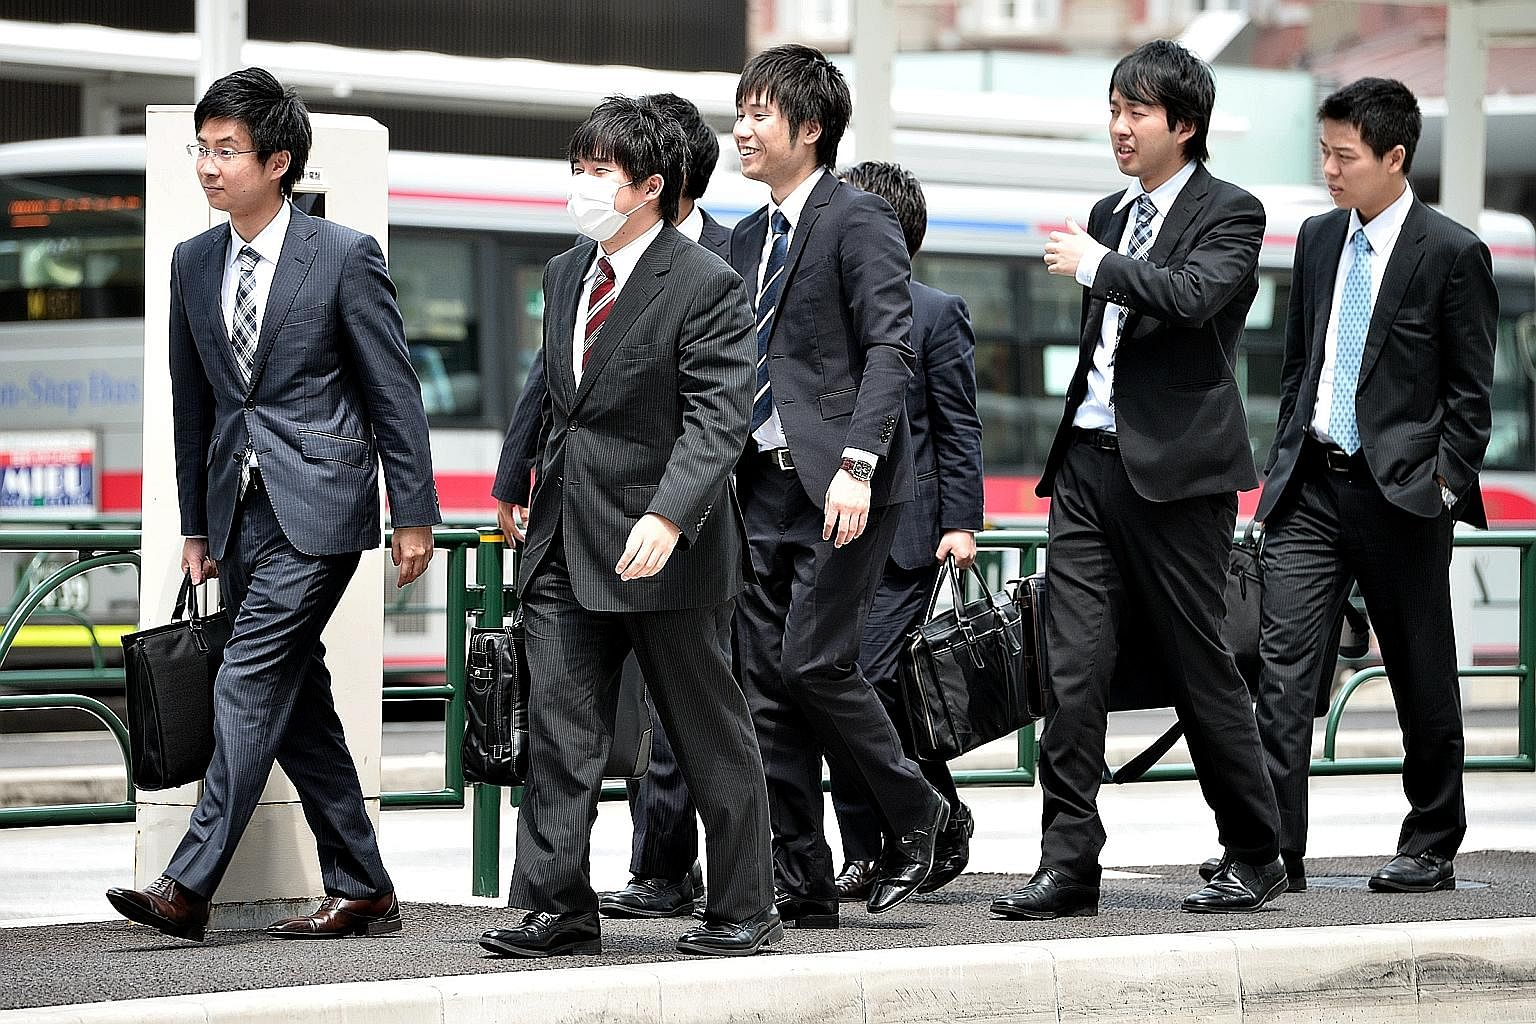 Japanese salarymen on their way to work in Tokyo. While Japan has achieved many things, including being the first Asian nation to attain First World status, its people remain kind and gracious. Its case shows that being competitive is not incompatibl